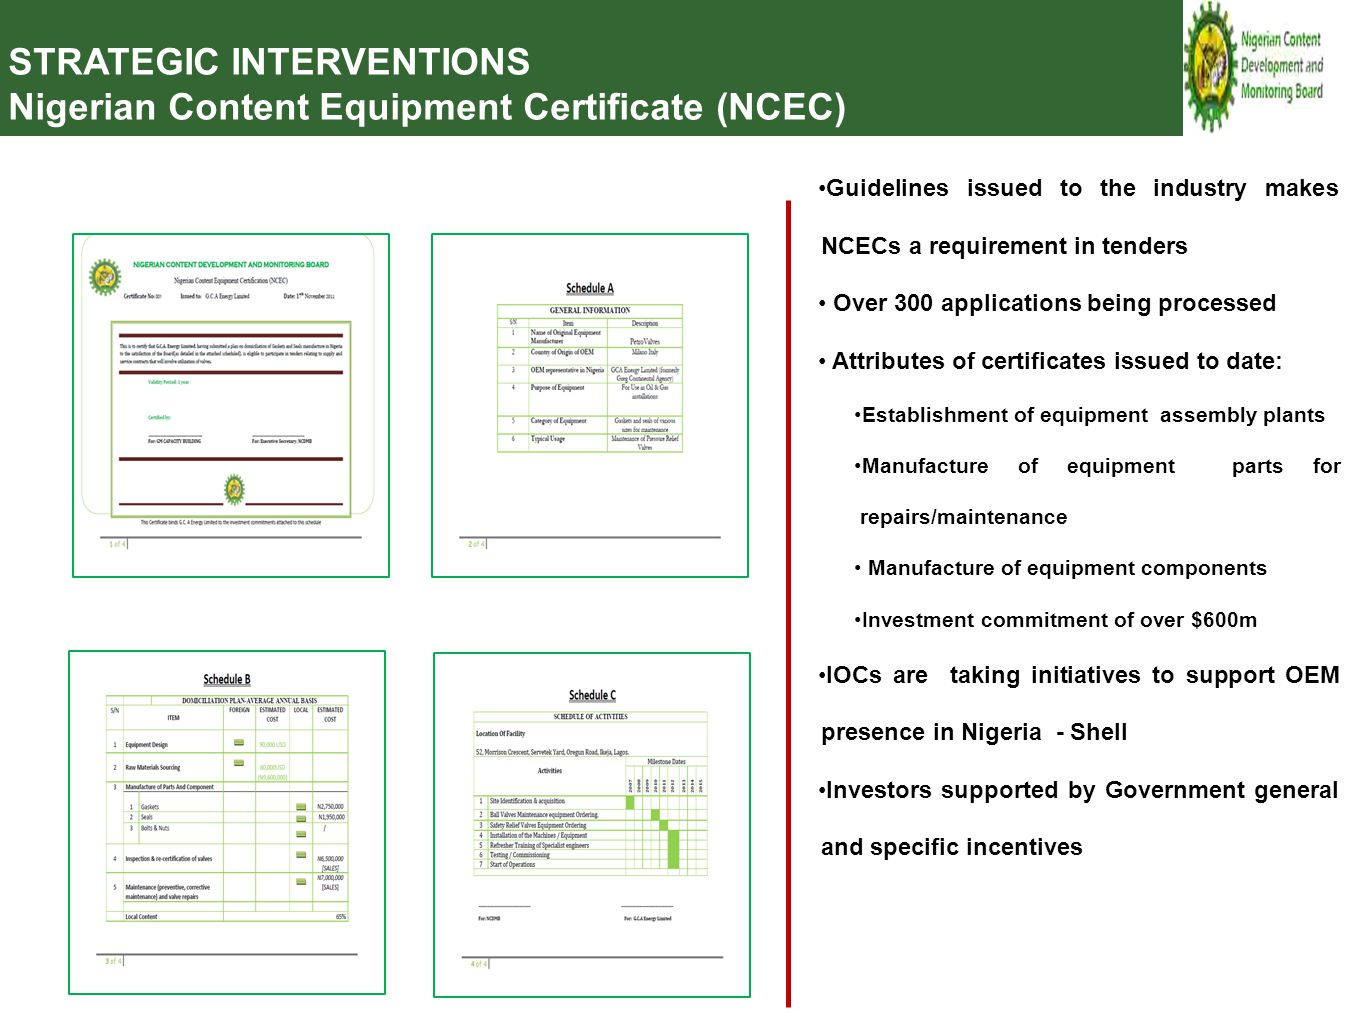 Guidelines issued to the industry makes NCECs a requirement in tenders Over 300 applications being processed Attributes of certificates issued to date: Establishment of equipment assembly plants Manufacture of equipment parts for repairs/maintenance Manufacture of equipment components Investment commitment of over $600m IOCs are taking initiatives to support OEM presence in Nigeria - Shell Investors supported by Government general and specific incentives STRATEGIC INTERVENTIONS Nigerian Content Equipment Certificate (NCEC)